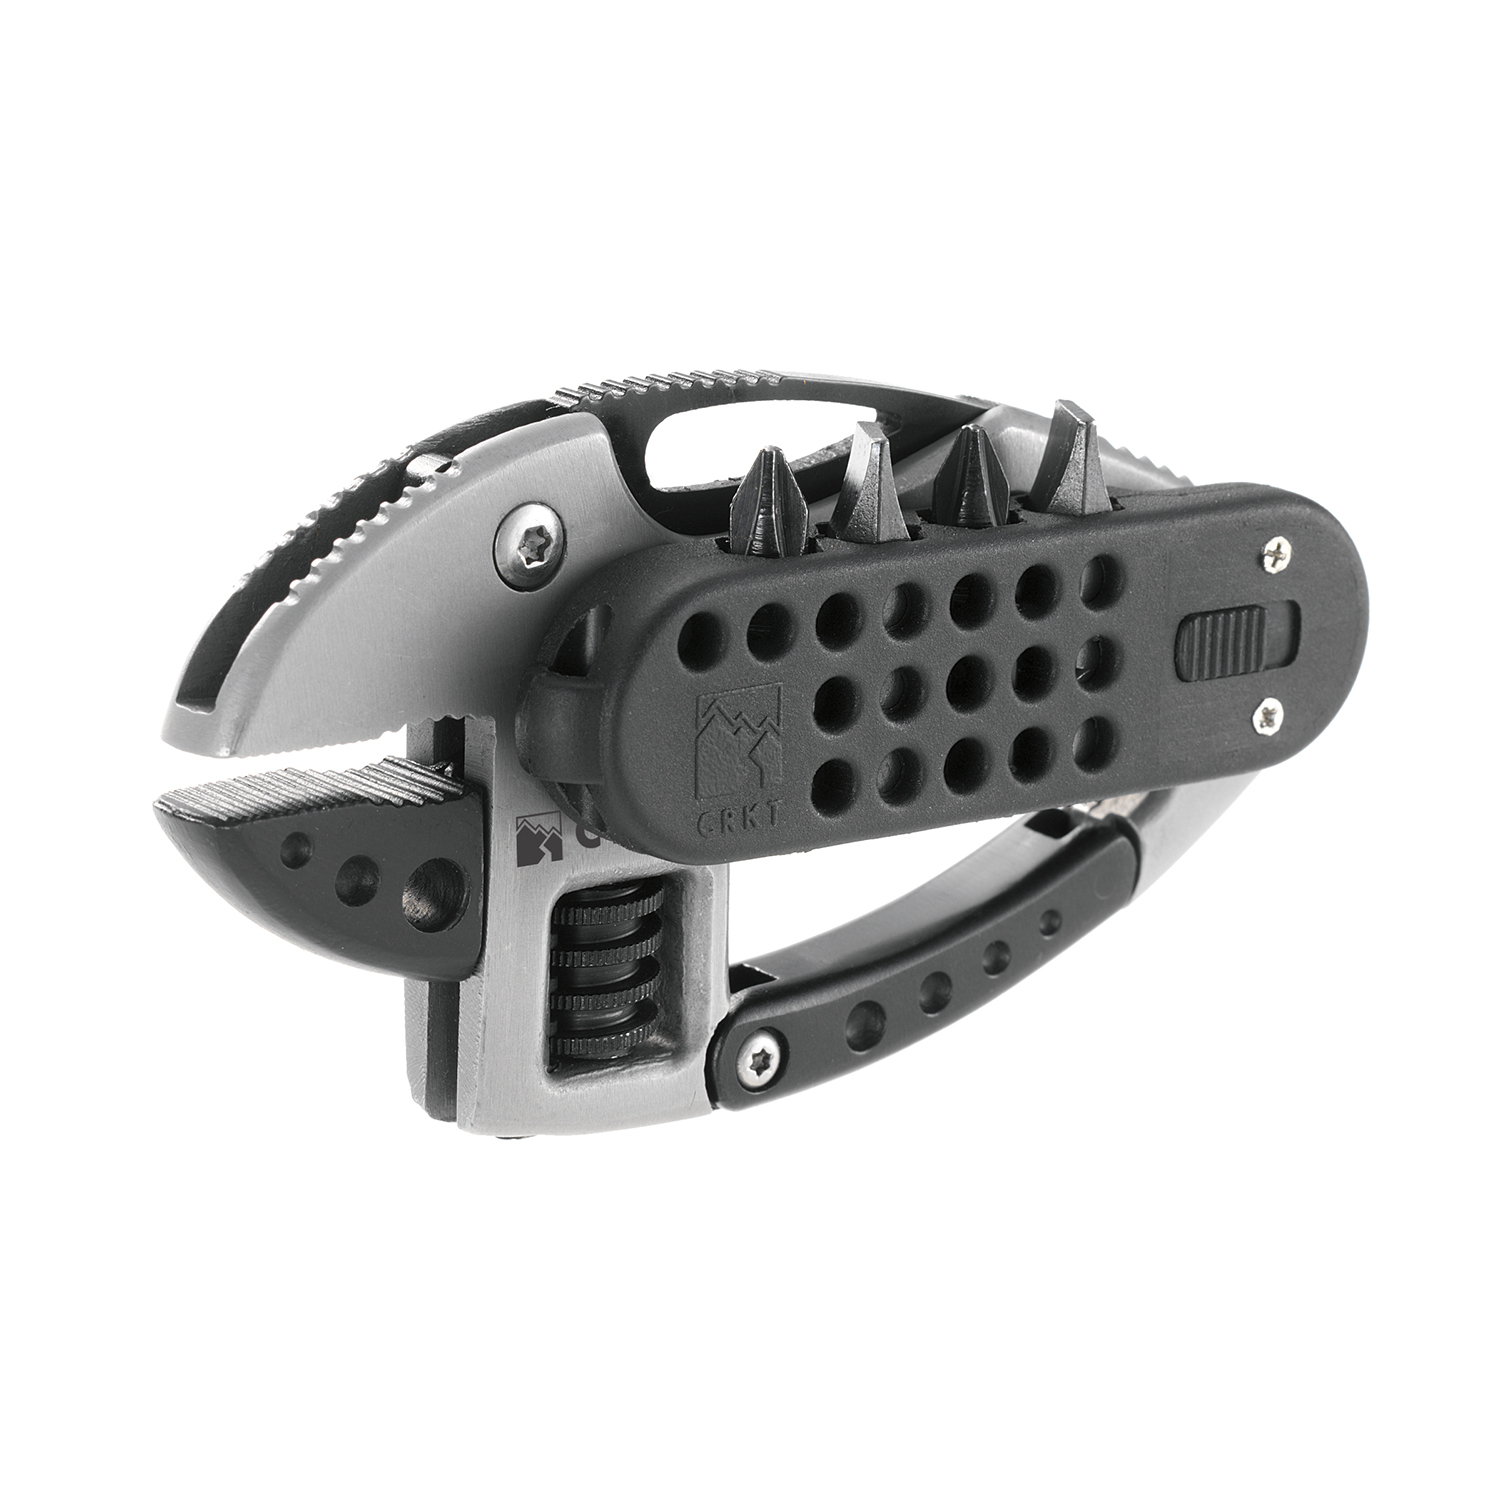 """CRKT Guppie Pocket Tool 9070 with Adjustable Wrench and 2.0"""" Plain Edge Blade and 6 other Functions"""